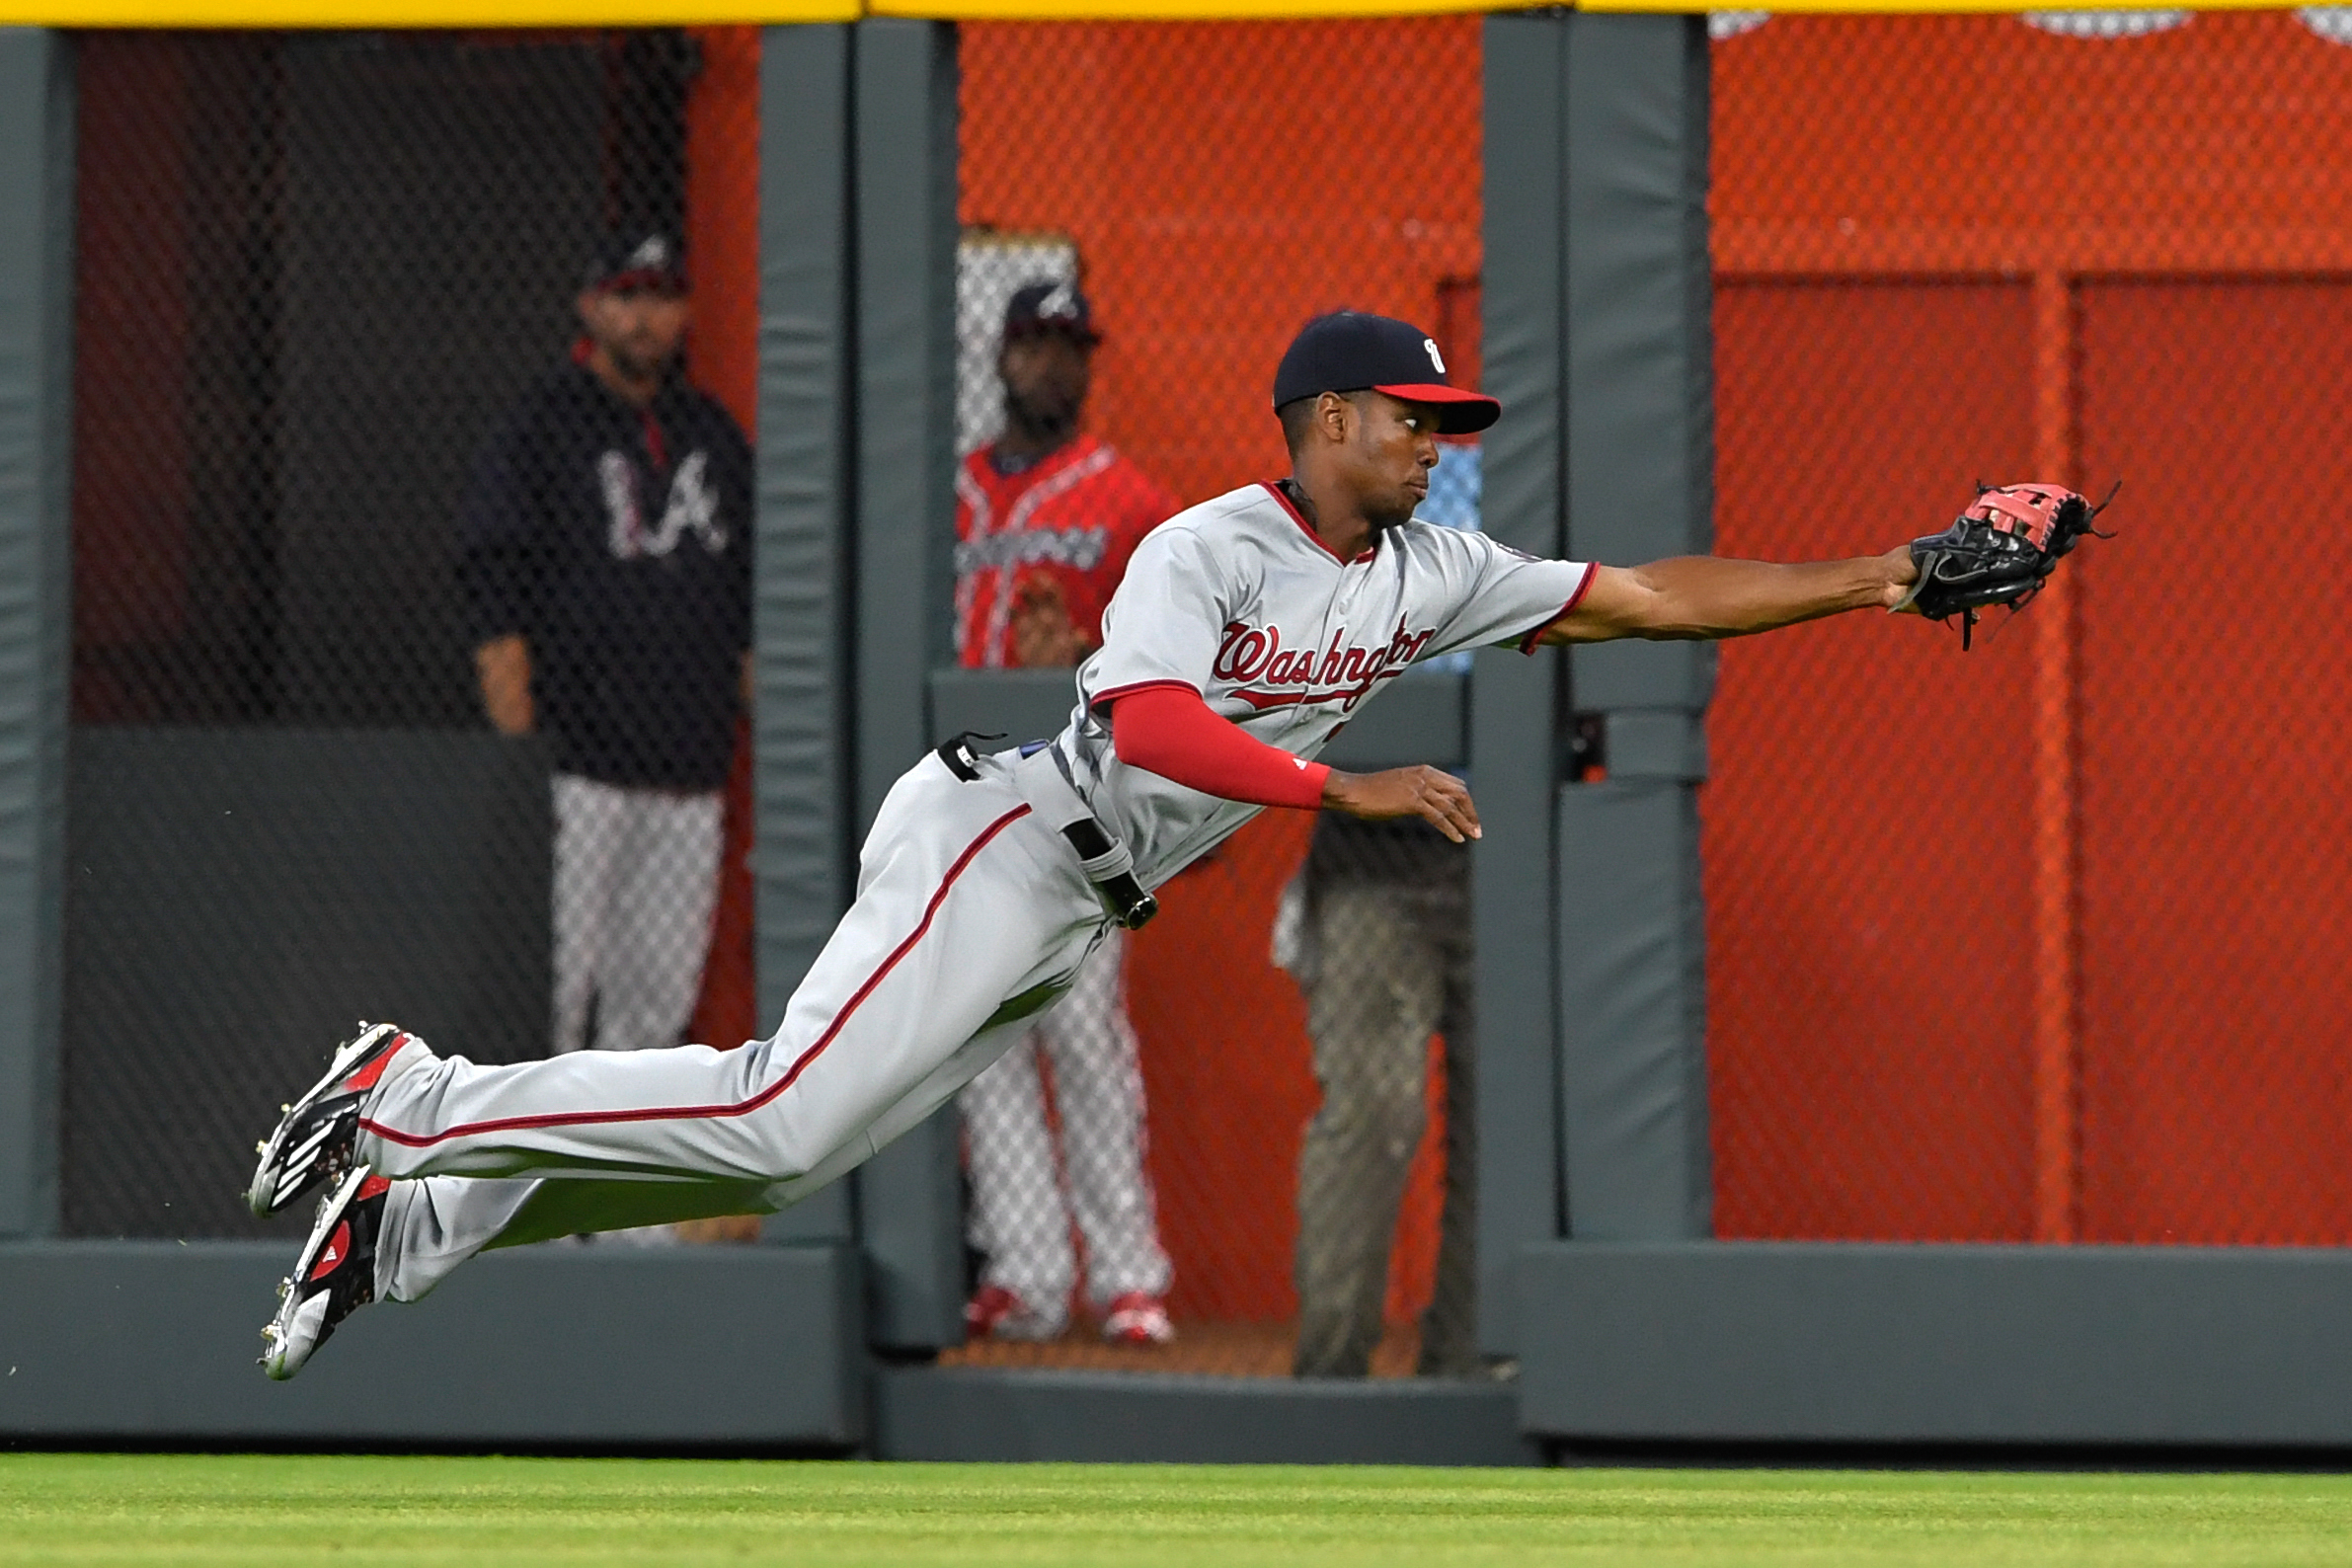 10067448-mlb-washington-nationals-at-atlanta-braves